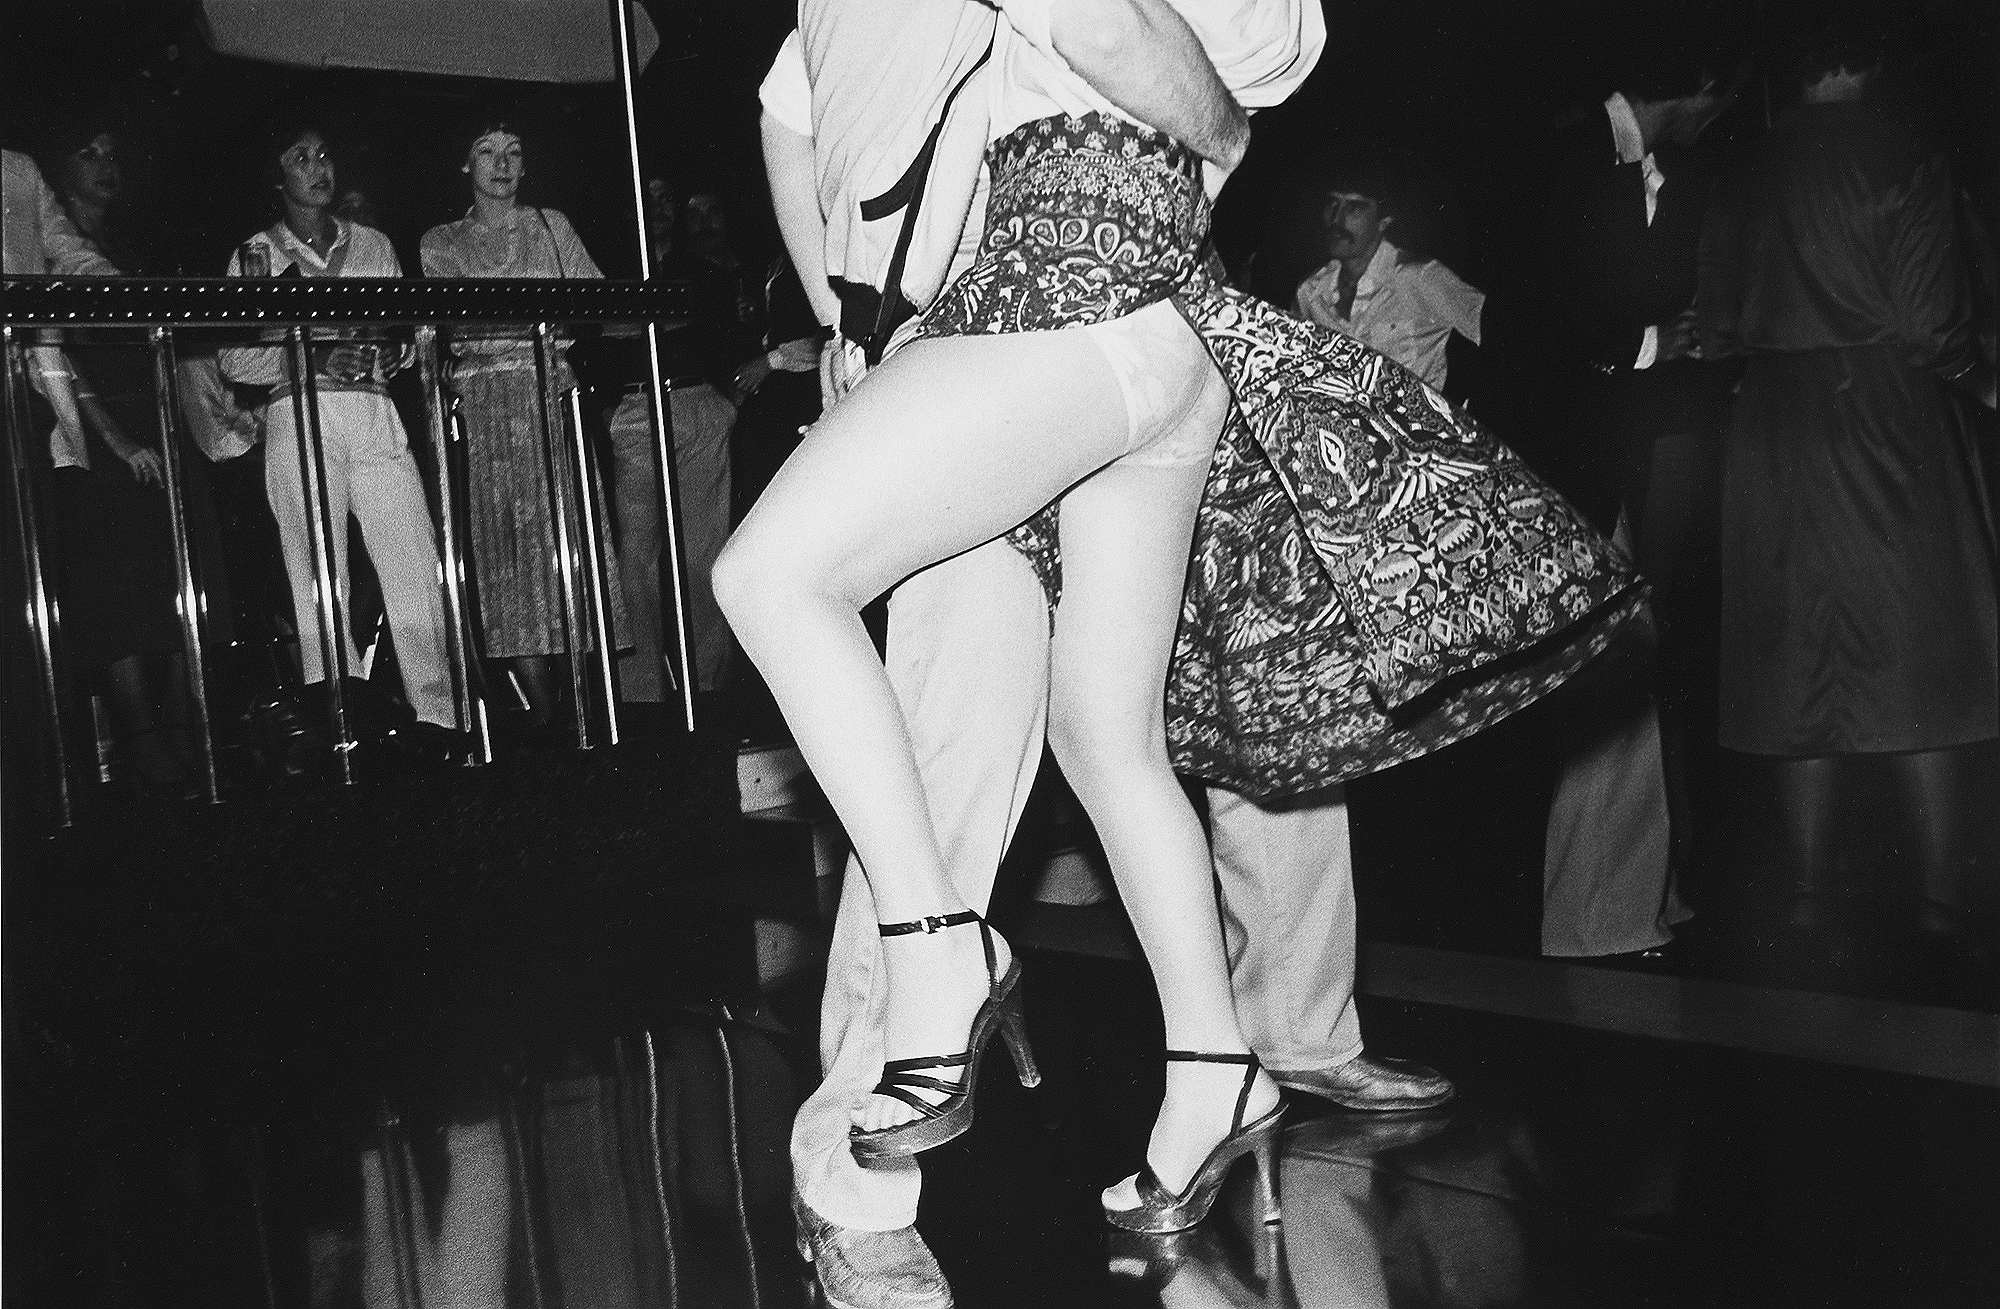 Tony_Ward_photography_early_work_Night_Fever_portfolio_1970's_erotic_dirty_dancing_couples_grinding_upskirt_panties